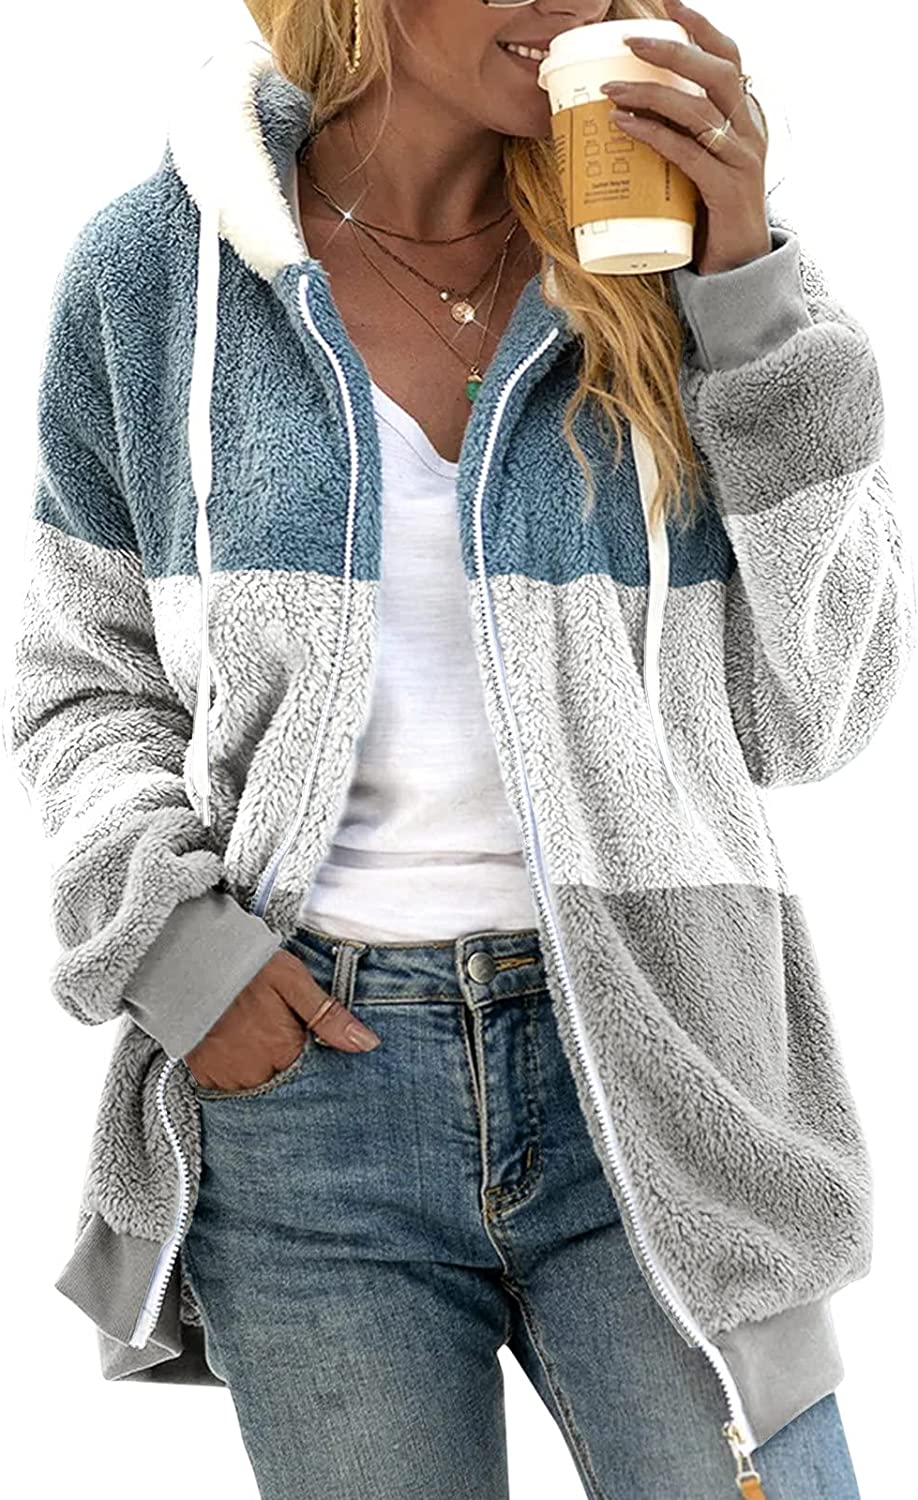 Xinantime Women's Hooded Faux Wool Coat Zipper Up Striped/Solid Color Long Sleeve Outwear Ladies Jackets with Pocket